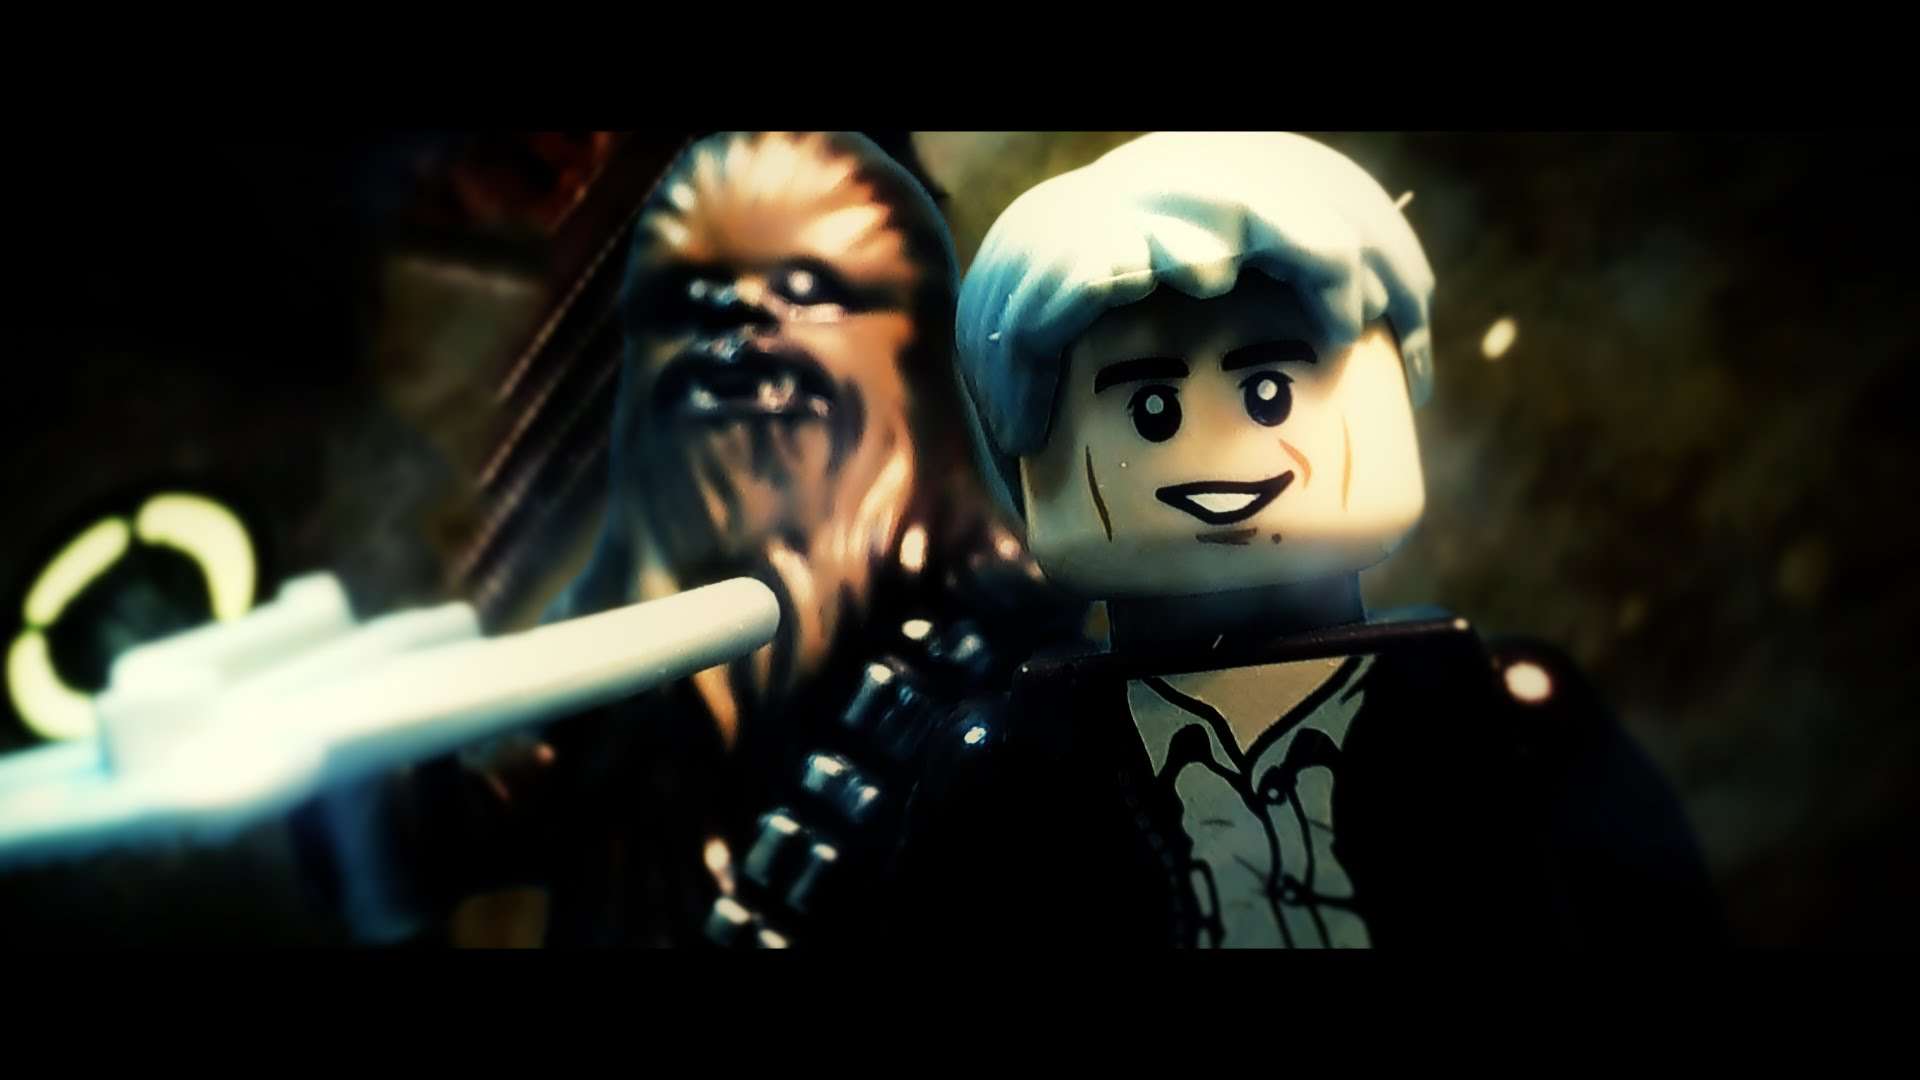 Lego Star Wars Episode Vii The Force Awakens Trailer Scifisunday